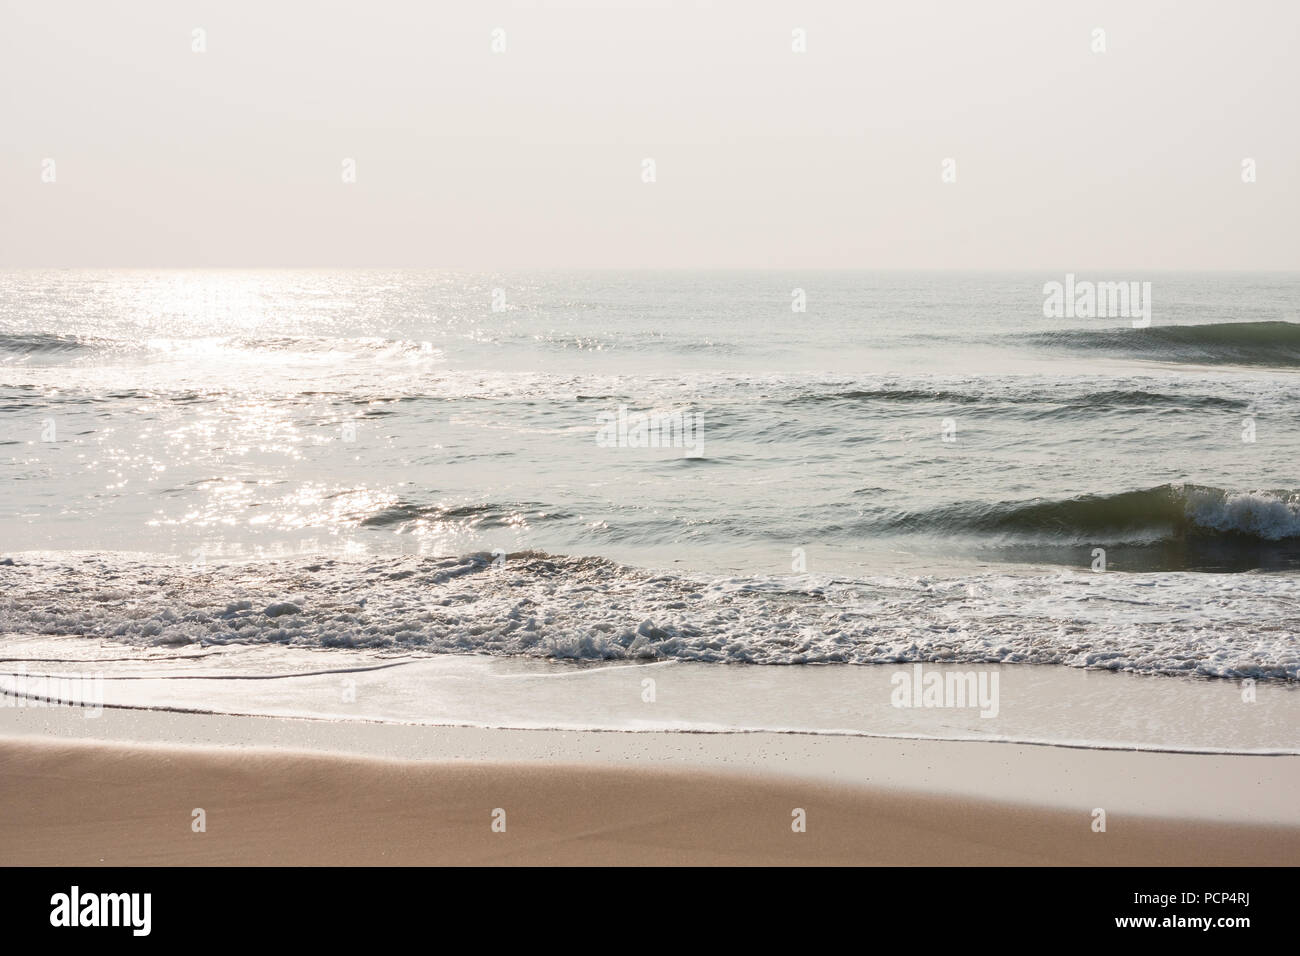 Glistening water on beach - Morning time on a tropical beach with glistening water and mild sea waves. - Stock Image